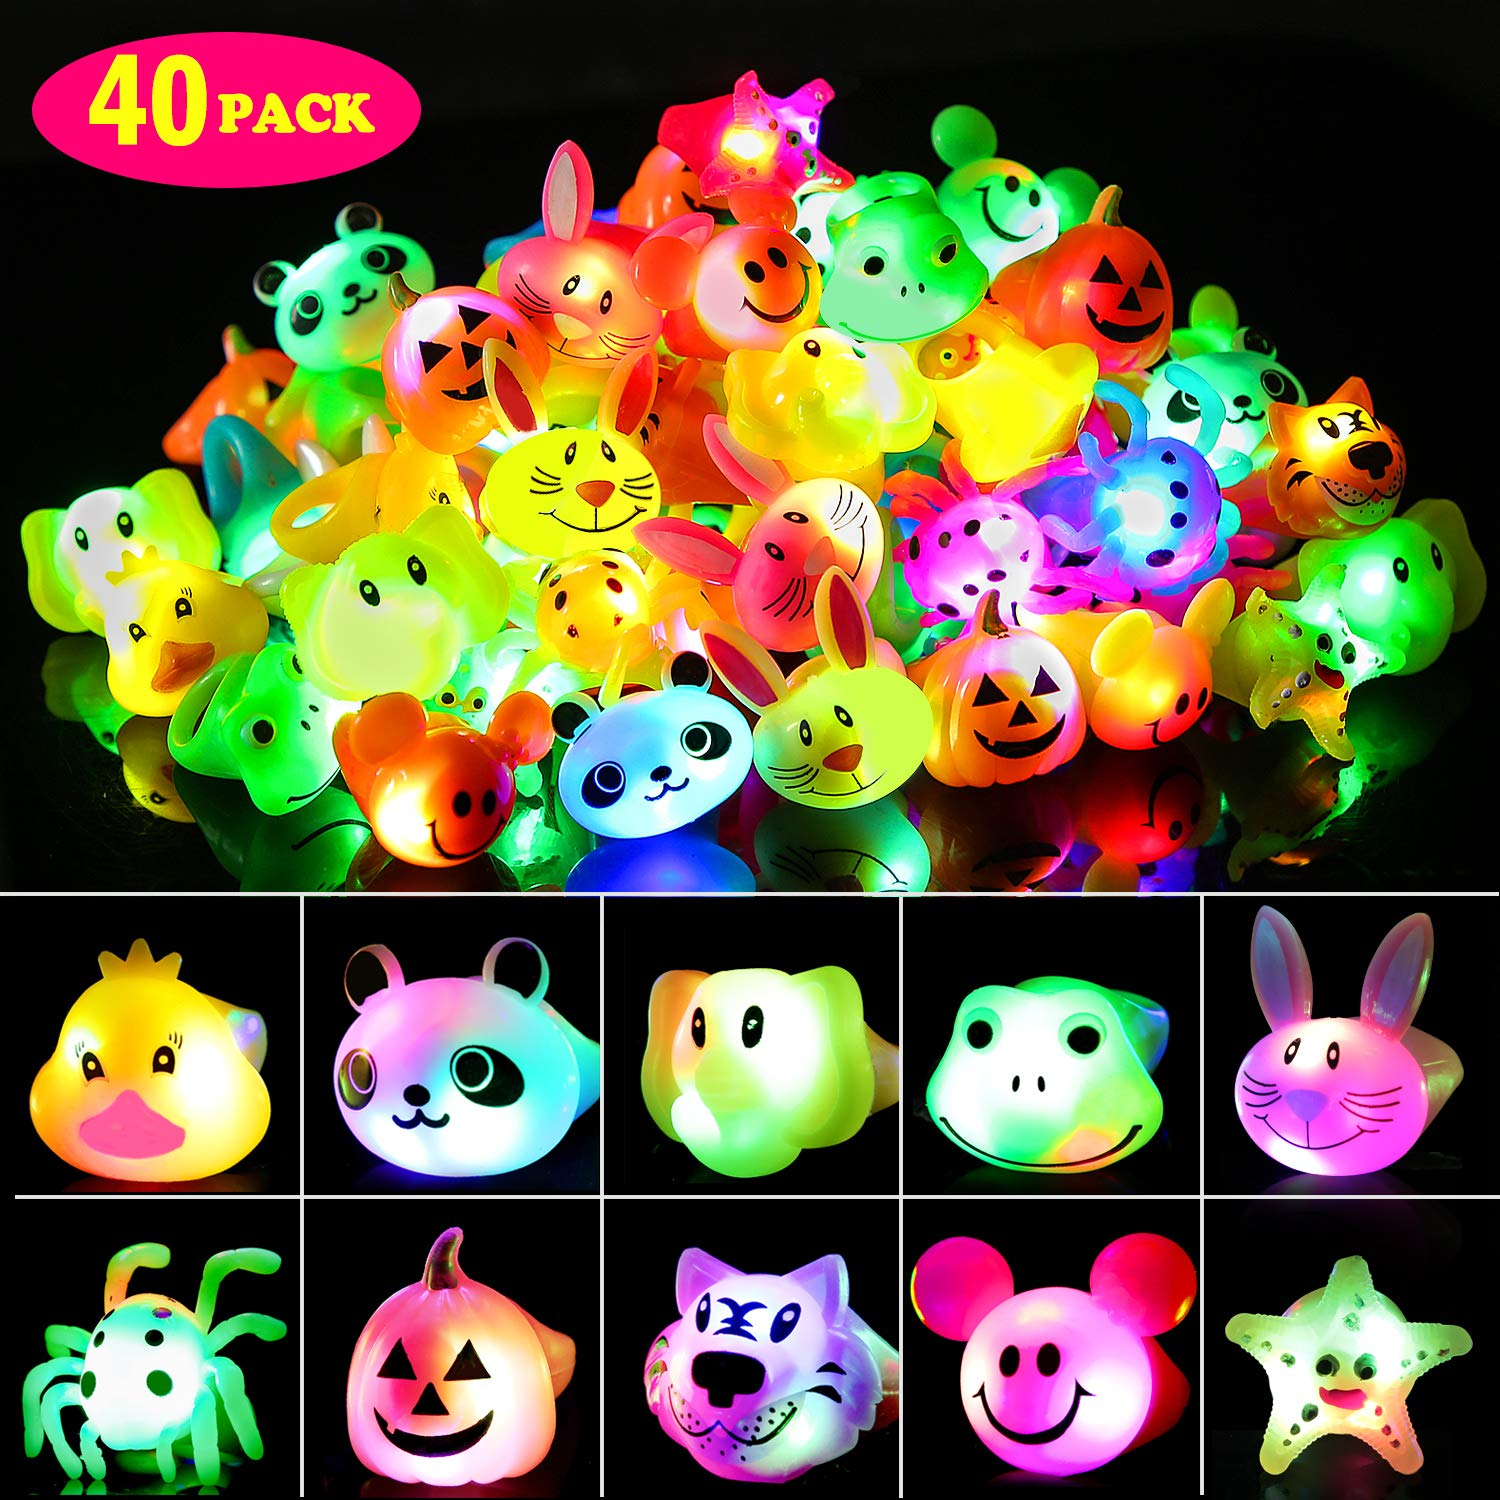 SCIONE Party Favor for Kids Birthday 40 Pack Light Up Rings Glow in The Dark Party Supplies Ring Prizes for Kids Classroom LED Jelly Rings Glow Blinking Novelty Bulk by SCIONE